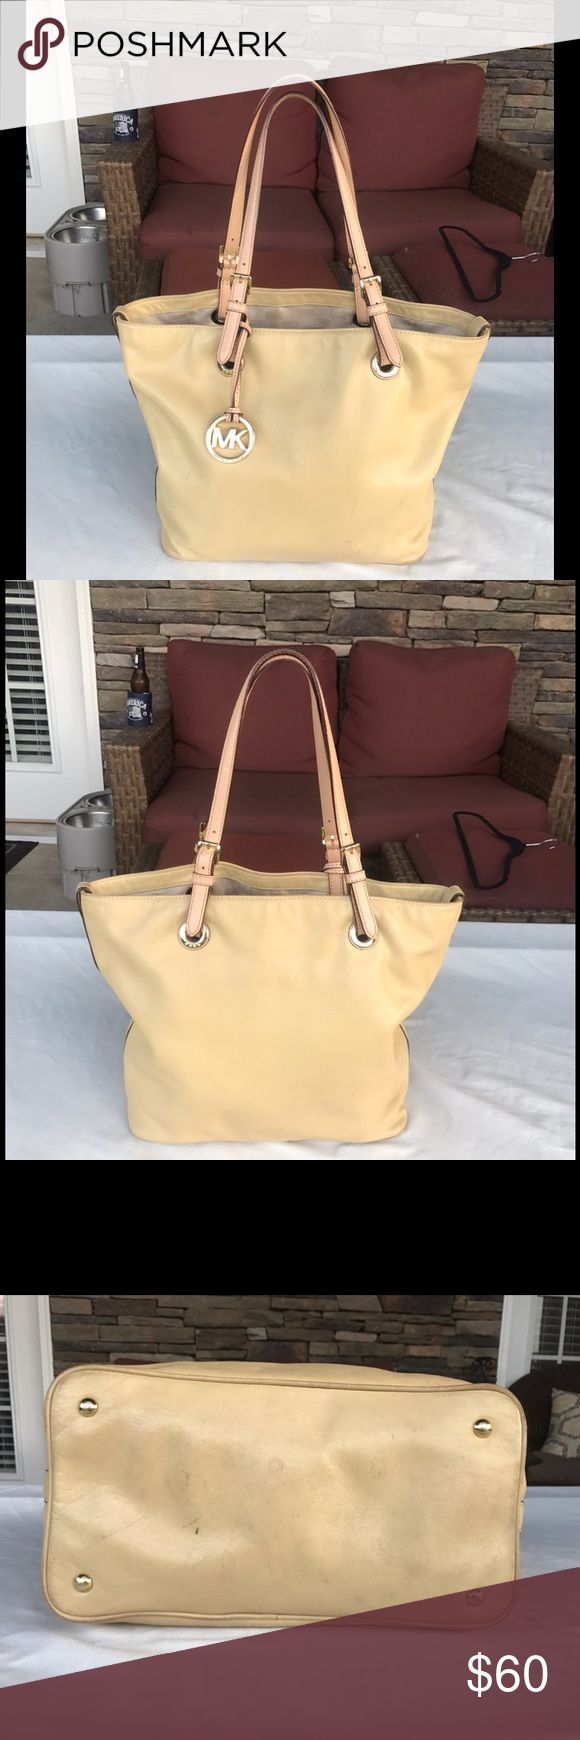 Michael Kors Tote / Purse I love the pale yellow color of this bag!  I'd say this bag is in fair to good condition. There is some weathered look on the sides, on the bottom and on the handles - see photos. But it is still a great looking designer bag! Make me an offer! 😊 Michael Kors Bags